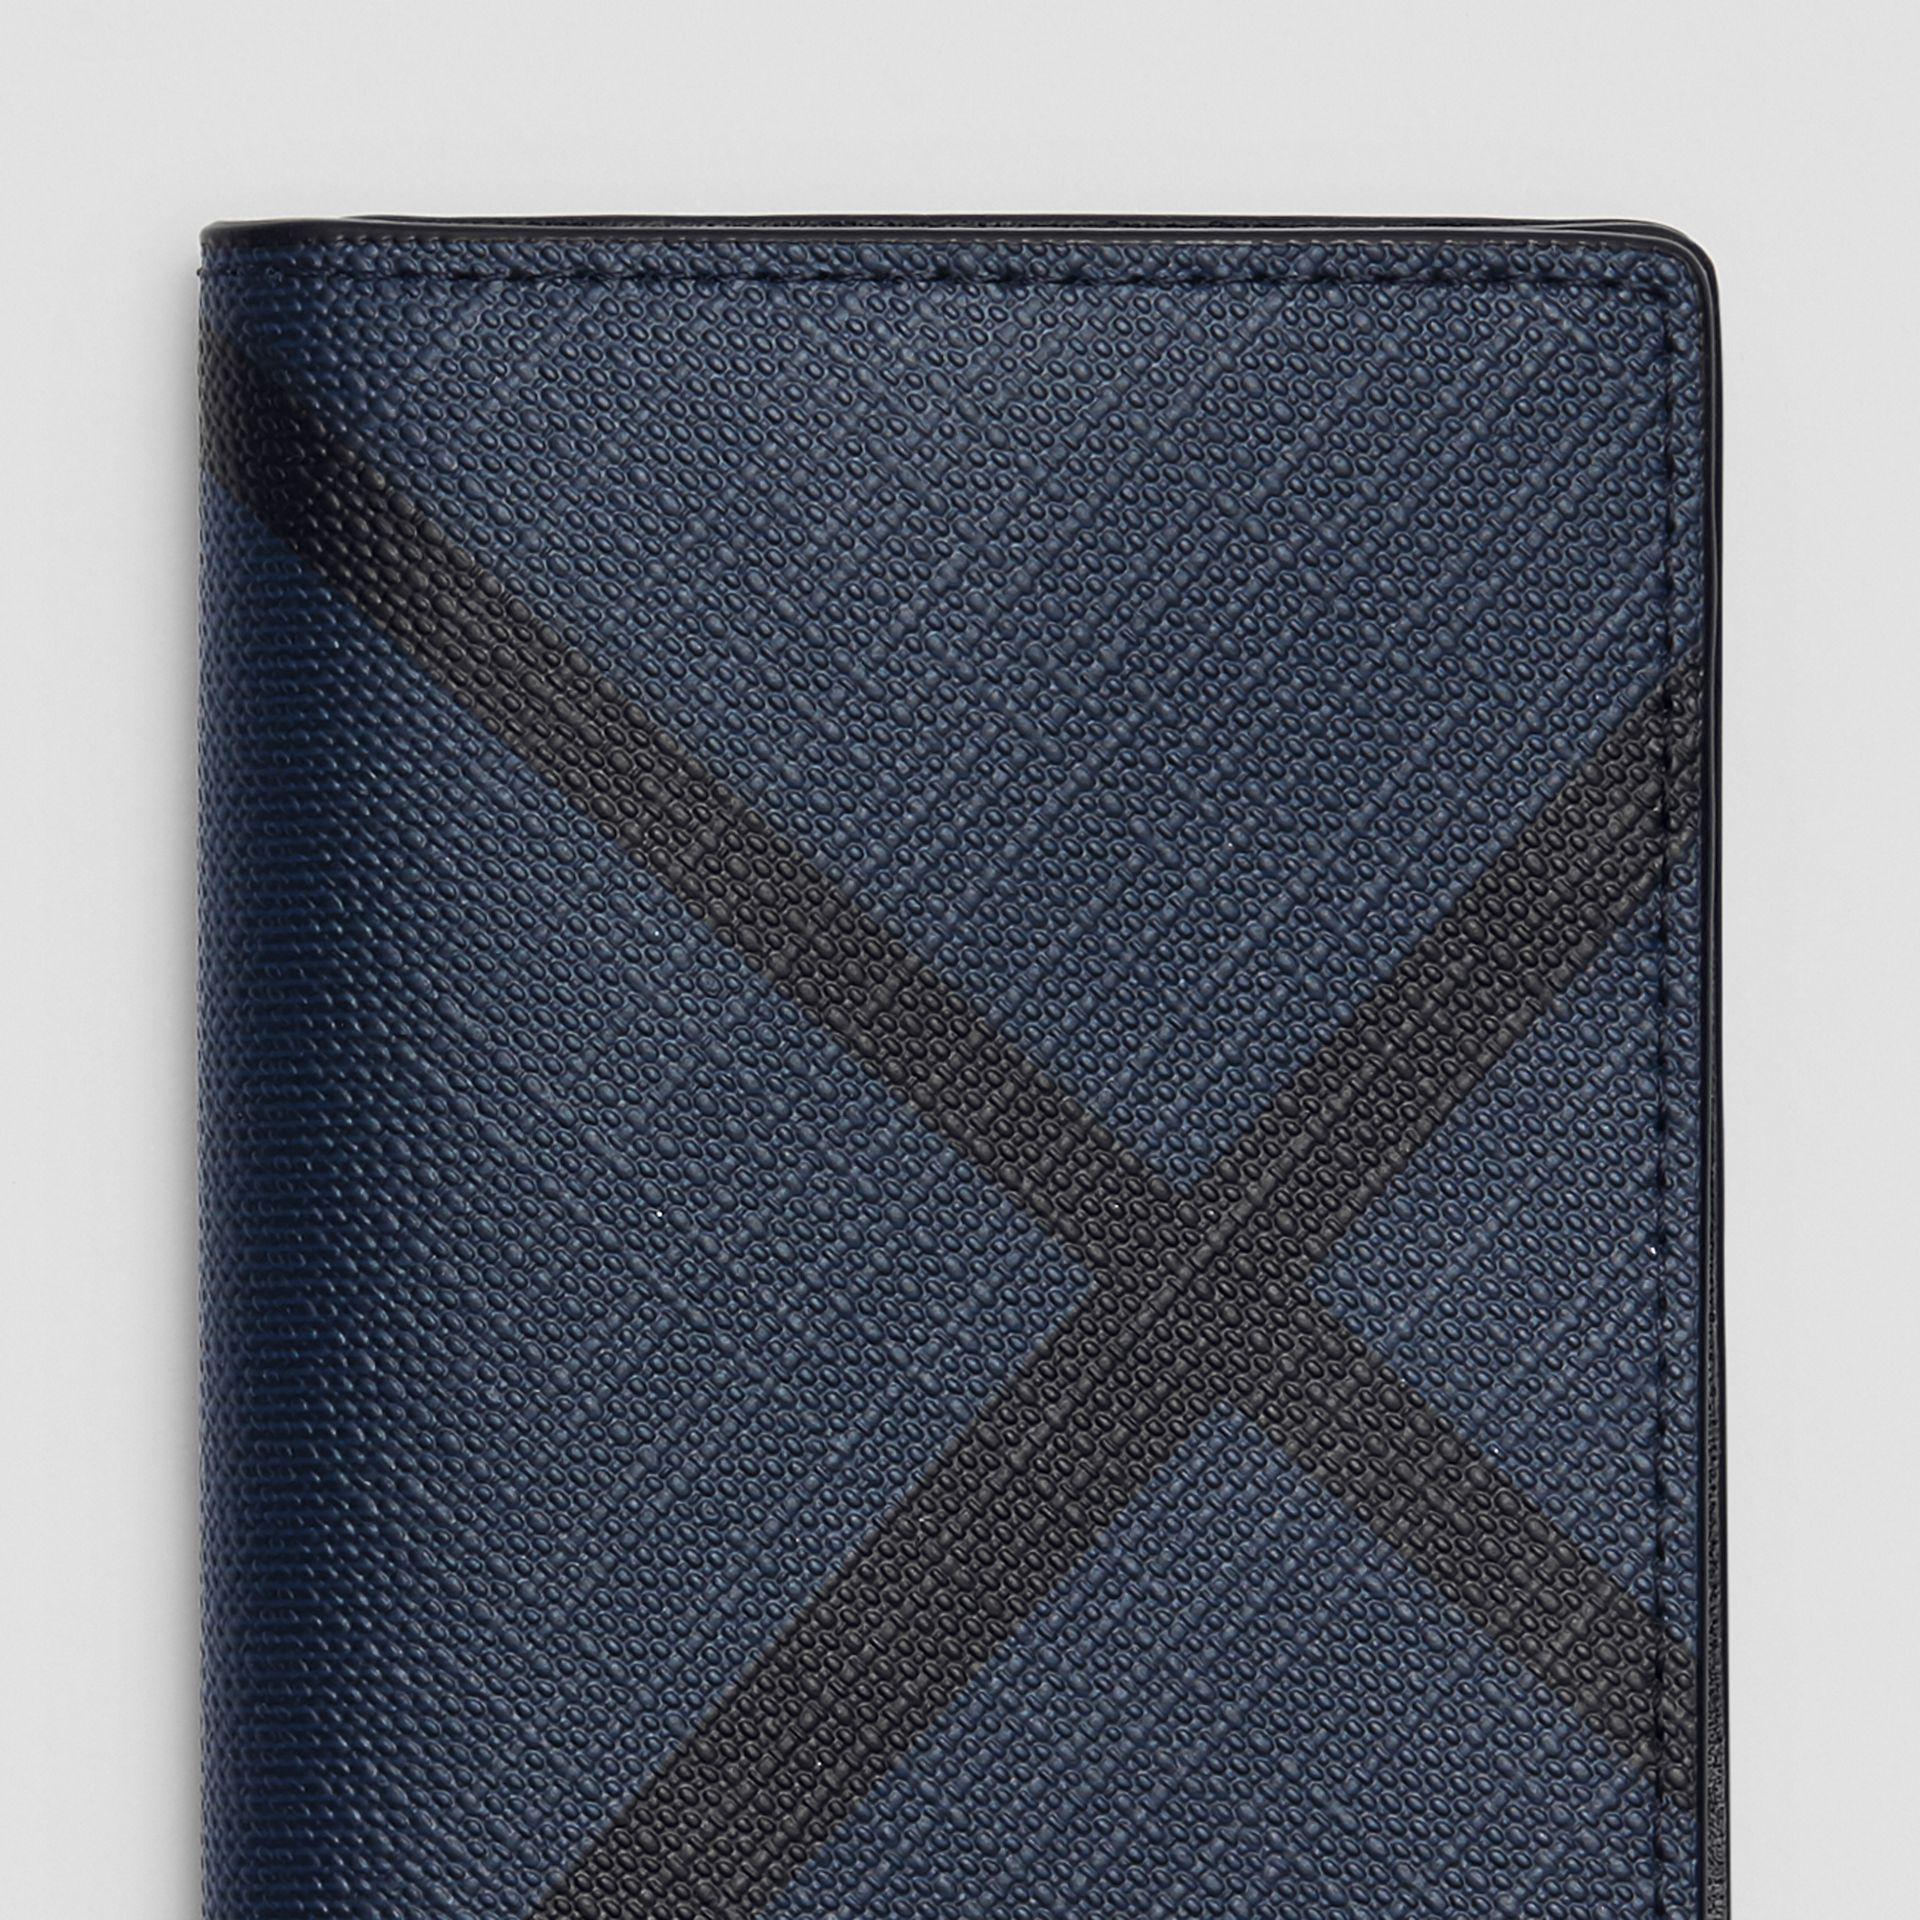 London Check and Leather Folding Card Case in Navy/black - Men | Burberry - gallery image 1